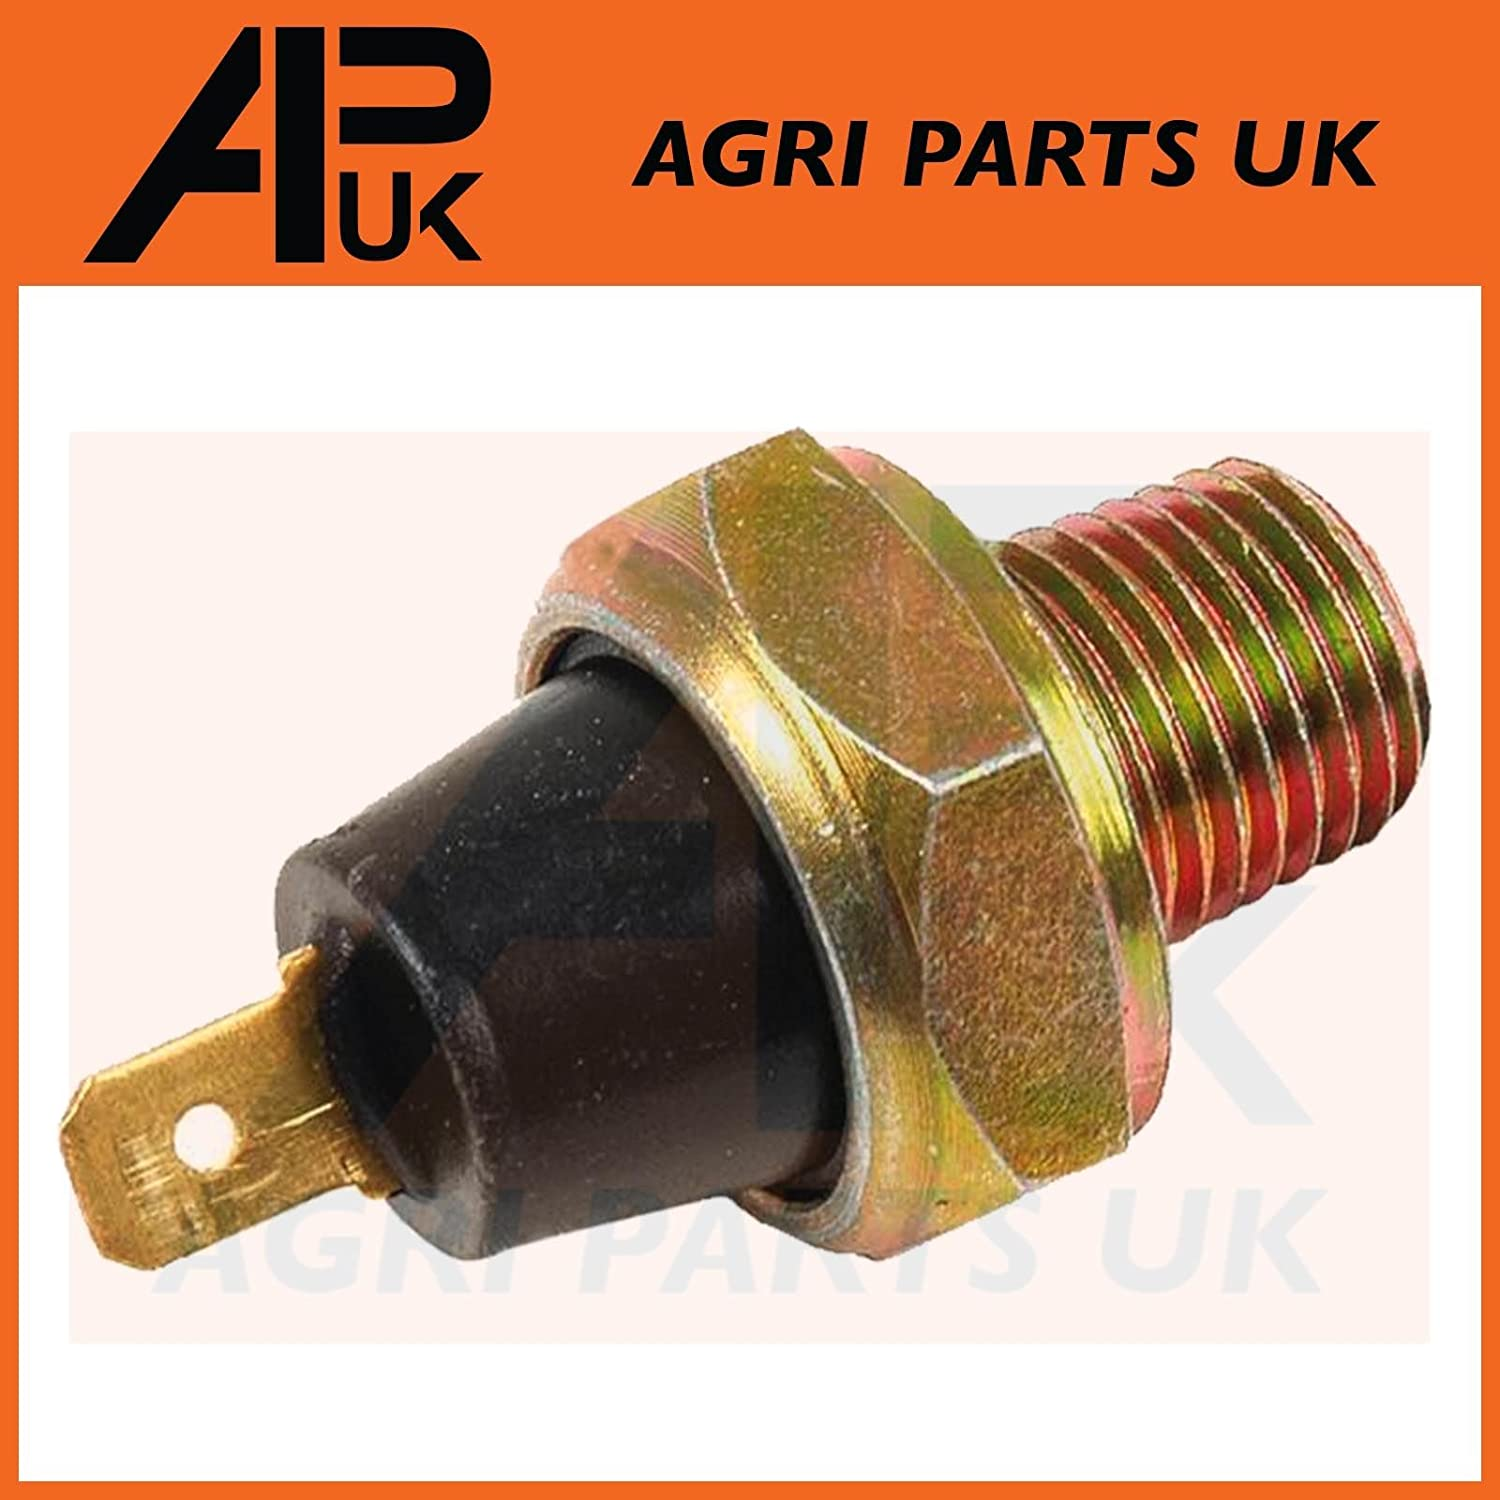 APUK Ford New Holland Tractor Oil Pressure Switch 3000 4000 5000 4600 6610 7610 TW Agri Parts UK Ltd